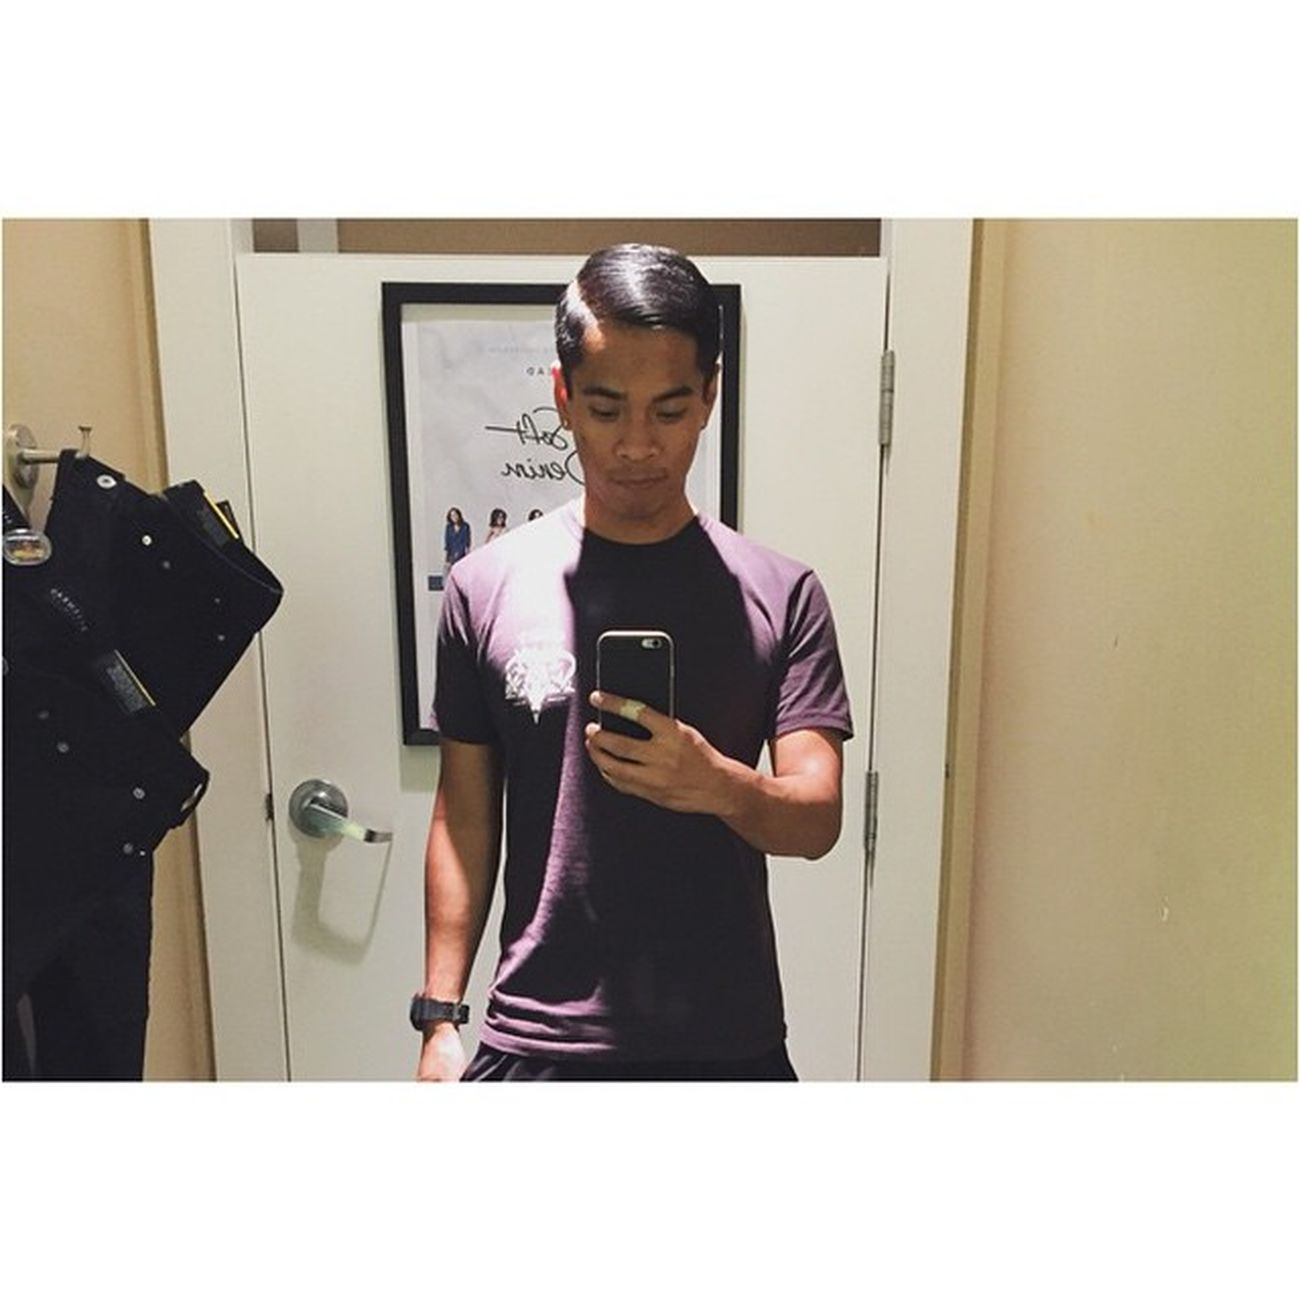 First mirror selfie with this iPhone 😁😁 Random Selfie Whatidoduringschoolbreak Shopping vsco